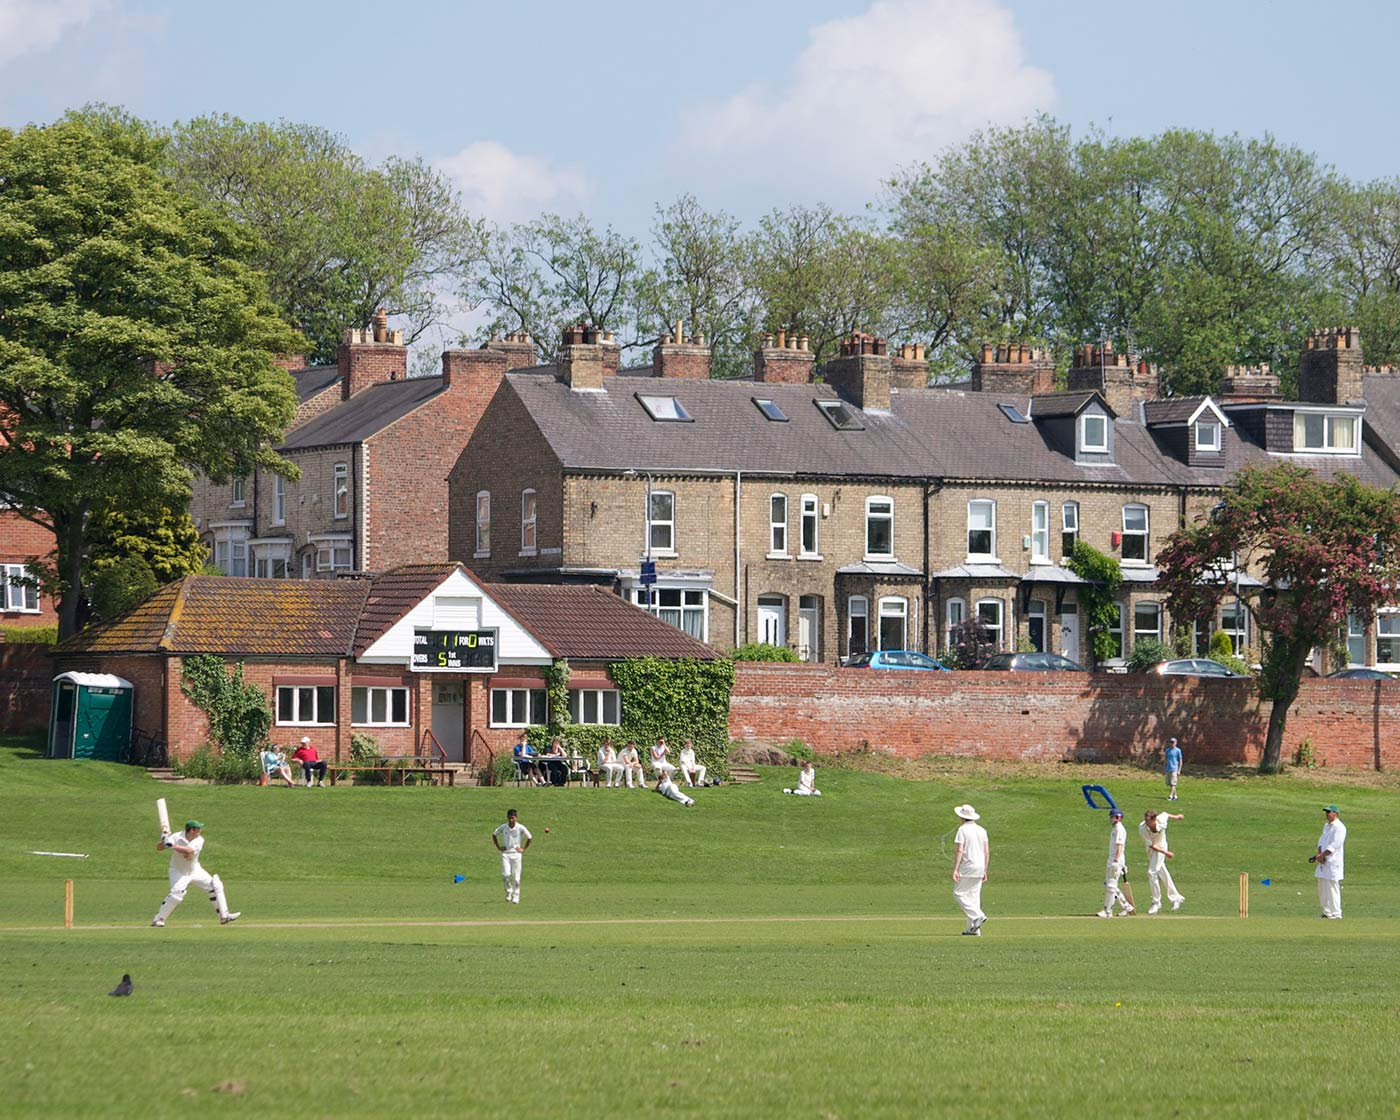 The Ovington Cricket Club ground